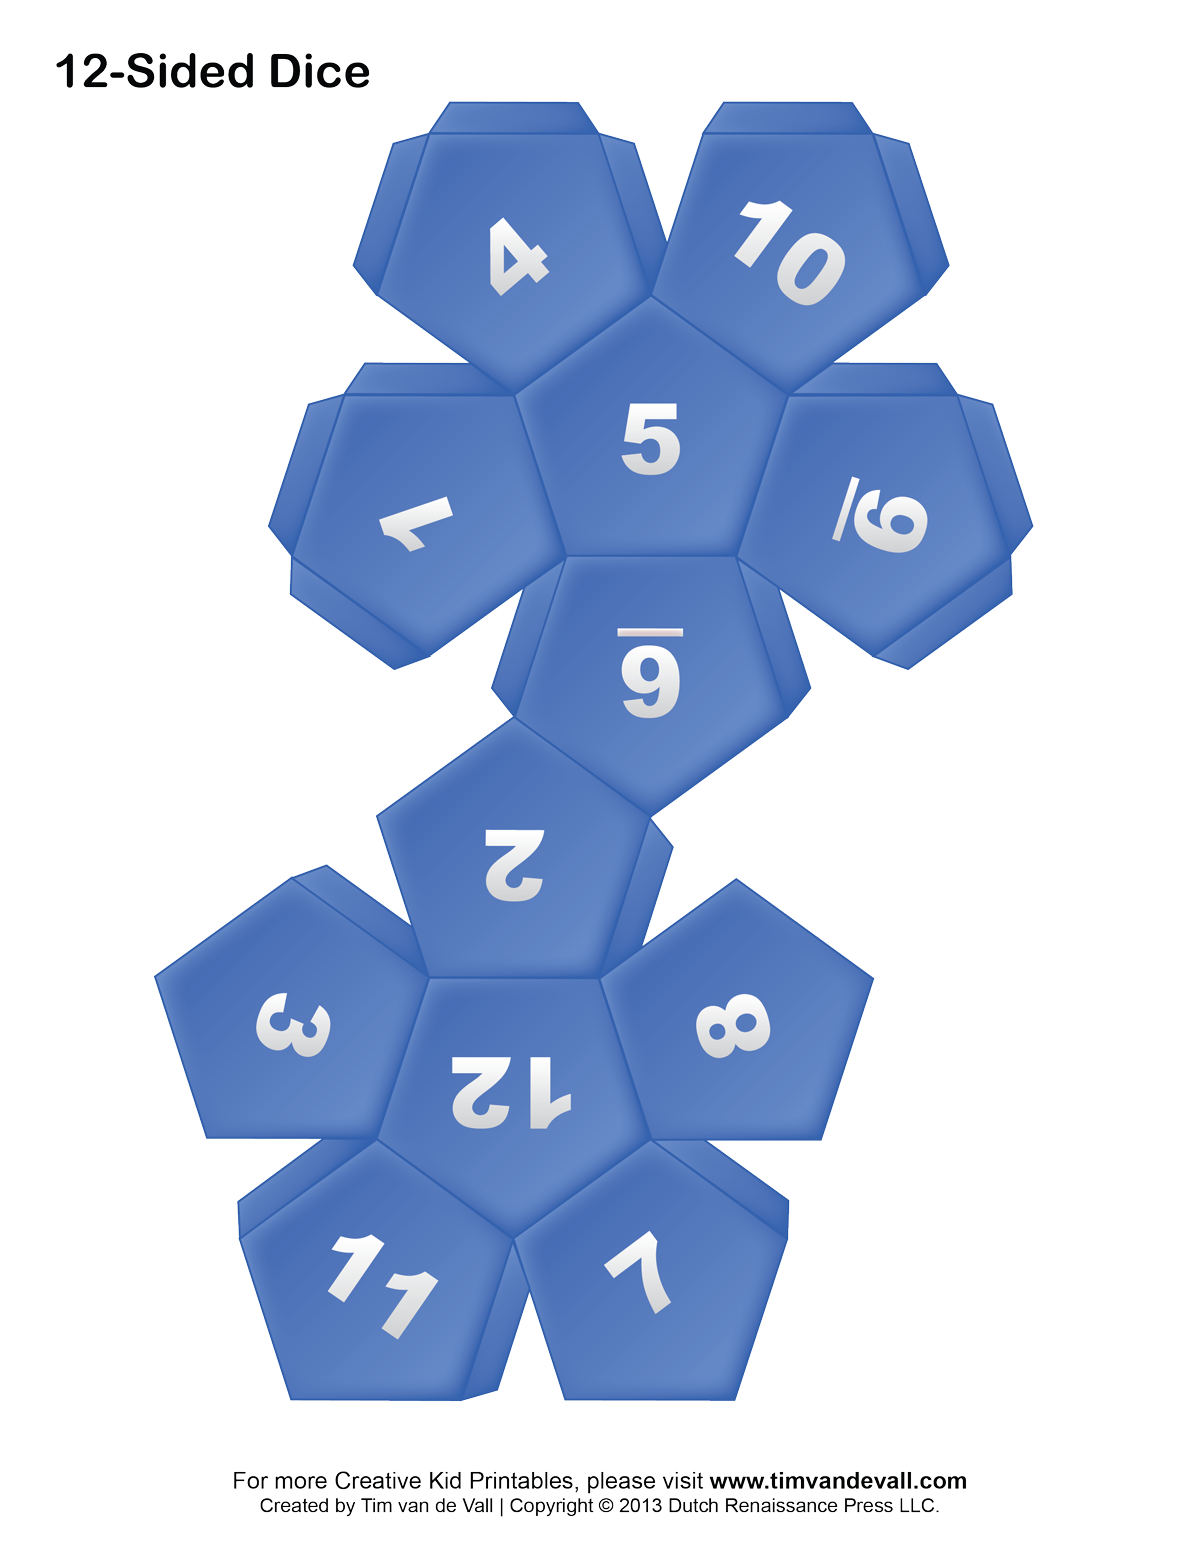 9 Images of Printable 12-Sided Dice